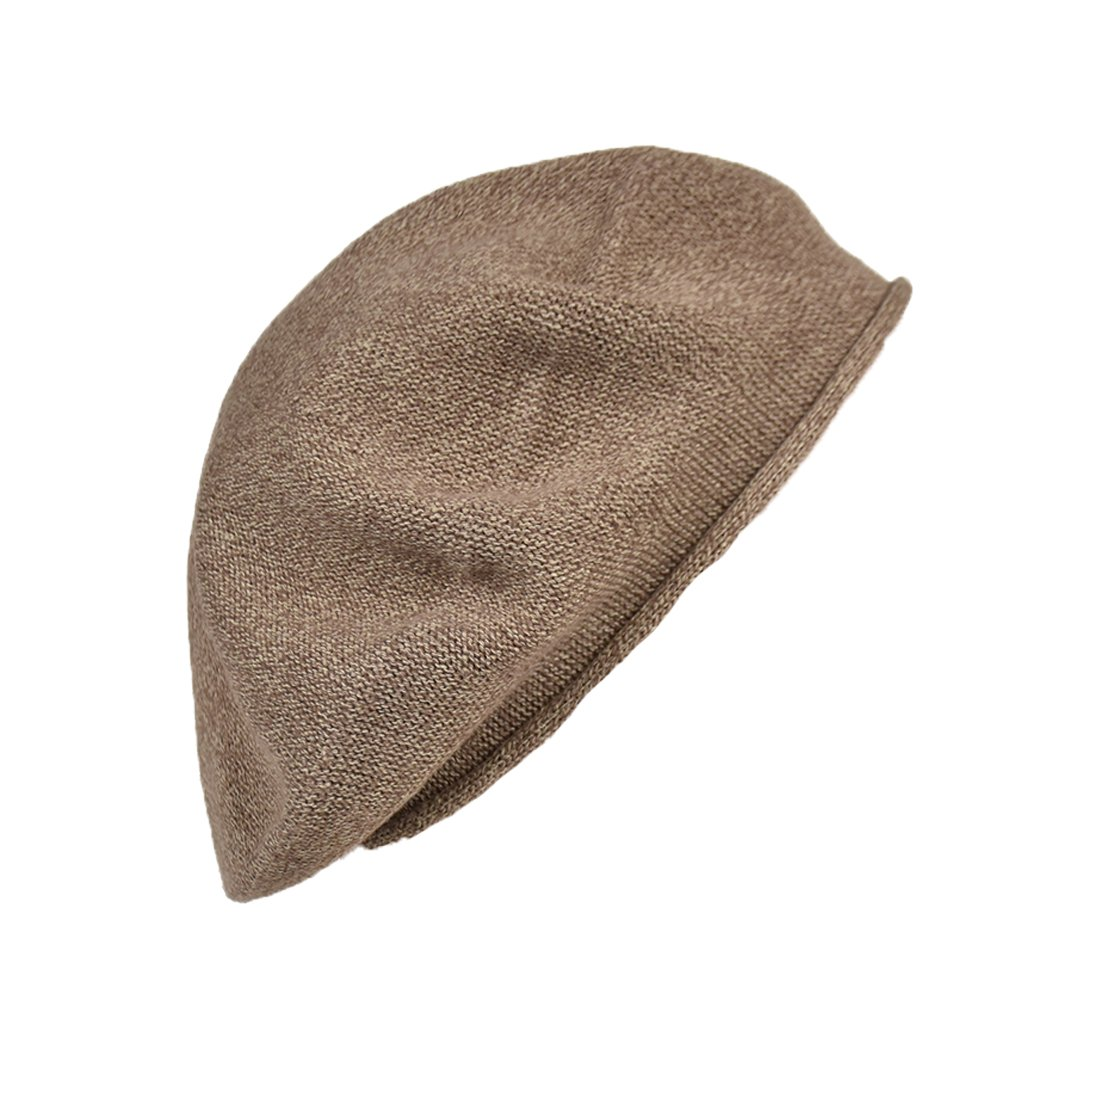 Landana Headscarves Melange Beret for Women 100% Cotton Solid - Beige